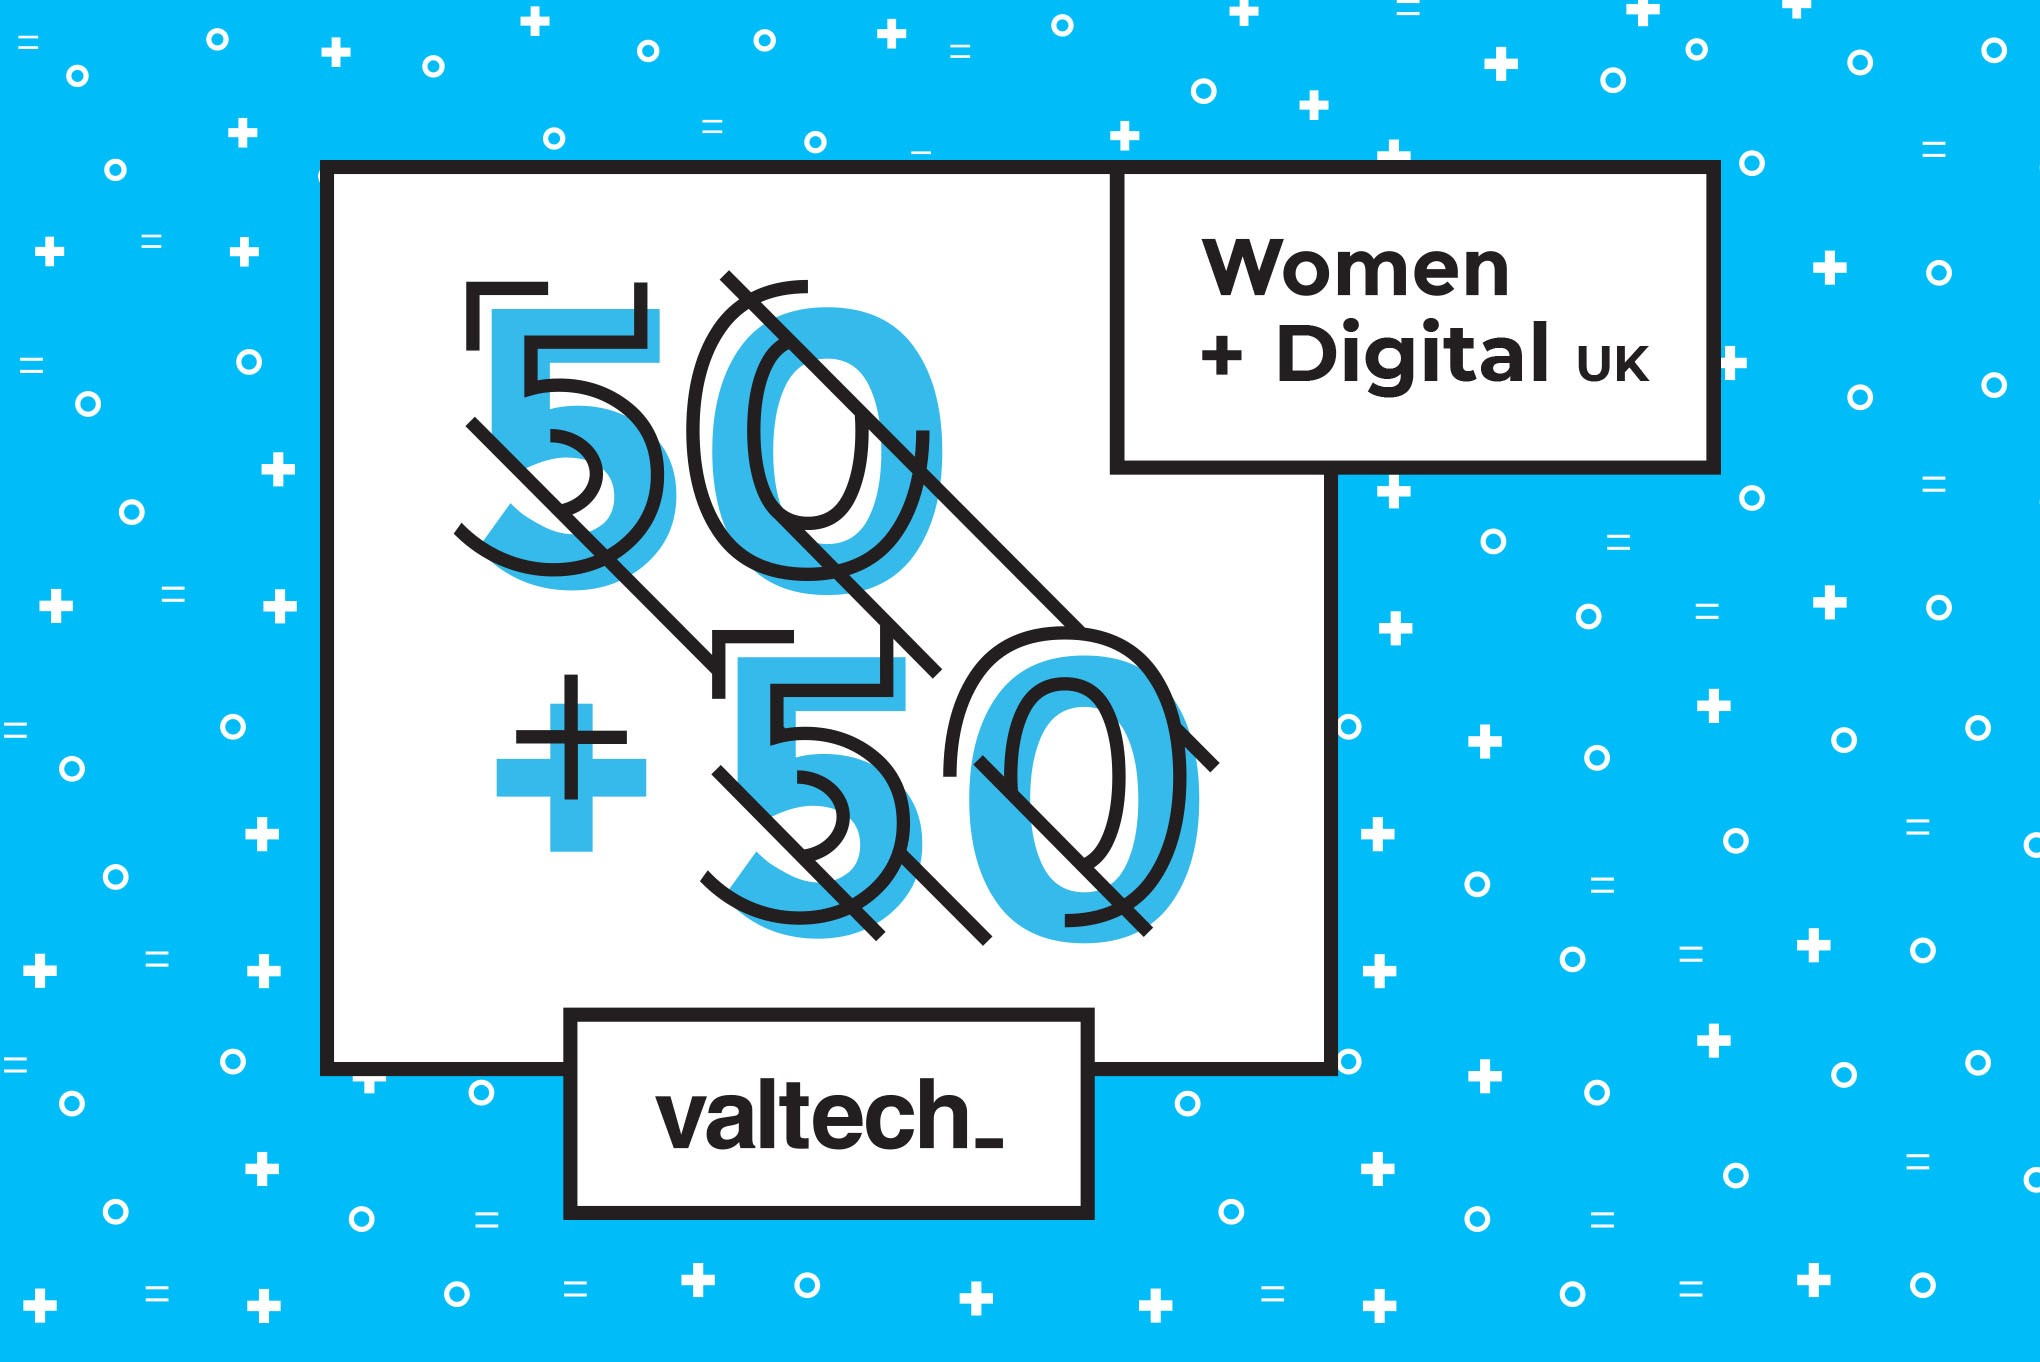 Launching 50+50 Women in Digital, UK